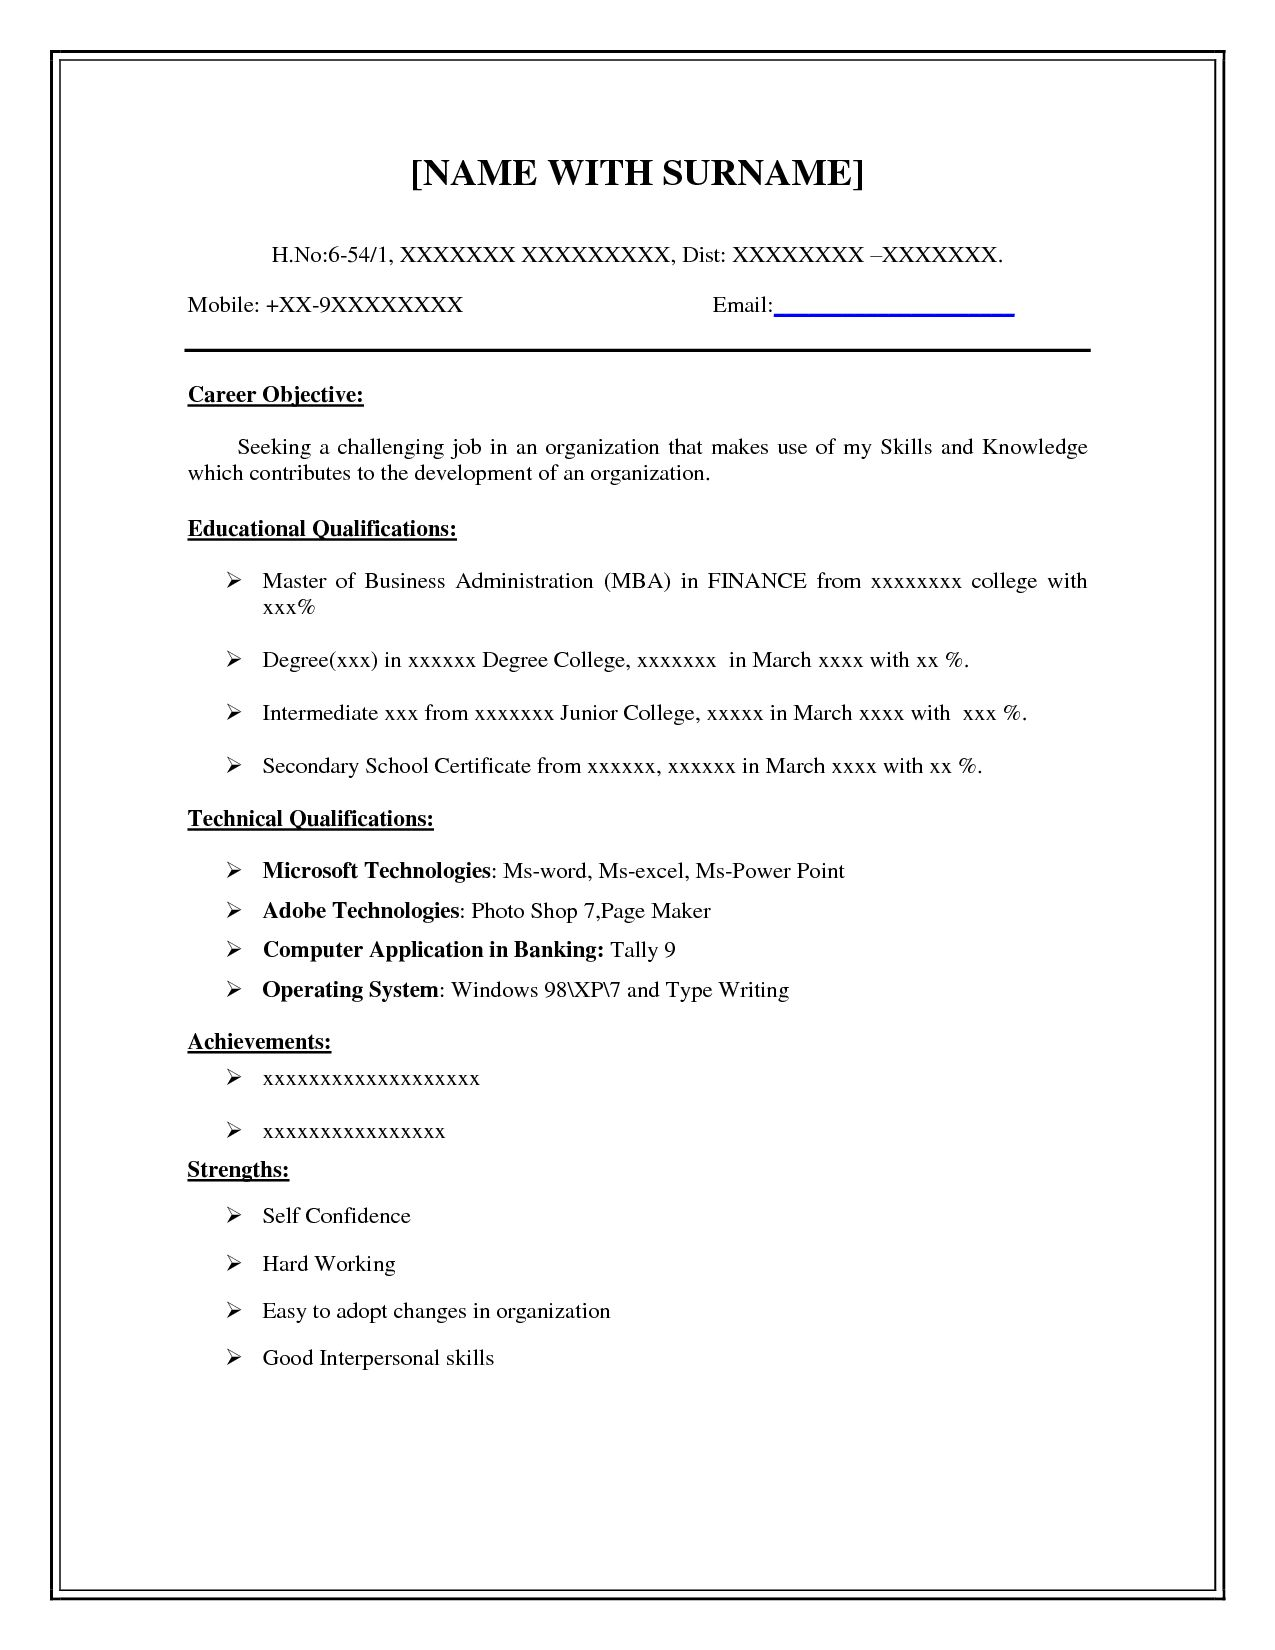 easy and free resume templates basic simple template step by format college student Resume Step By Step Resume Format